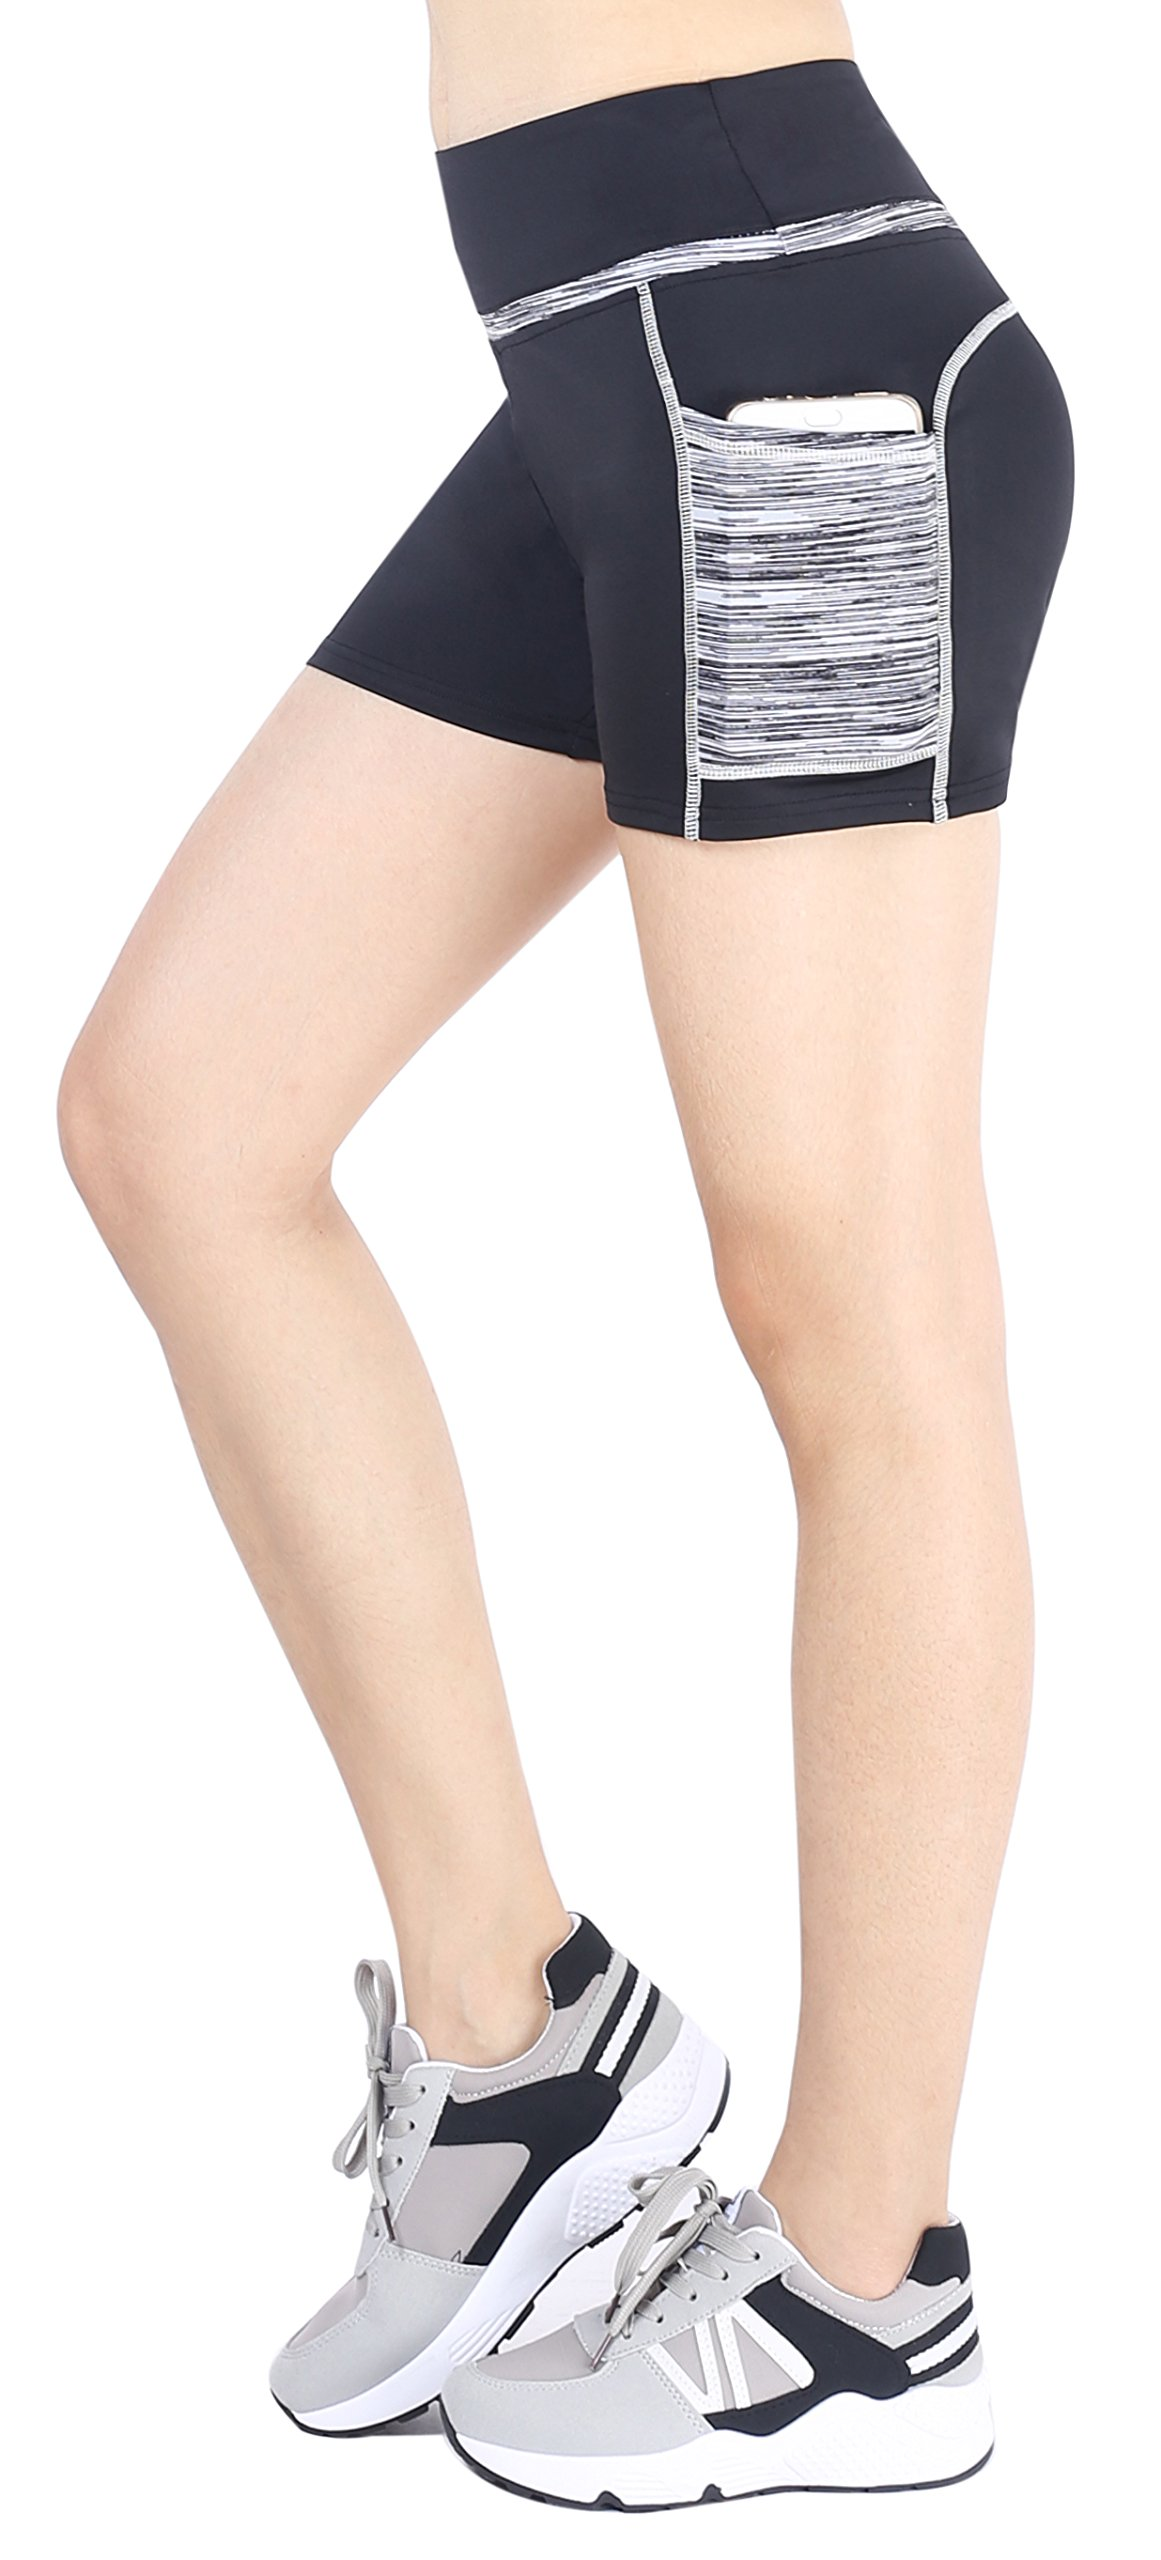 Sugar Pocket Women's Workout Shorts Running Tights Yoga Short Pants  S(Black/Grey)